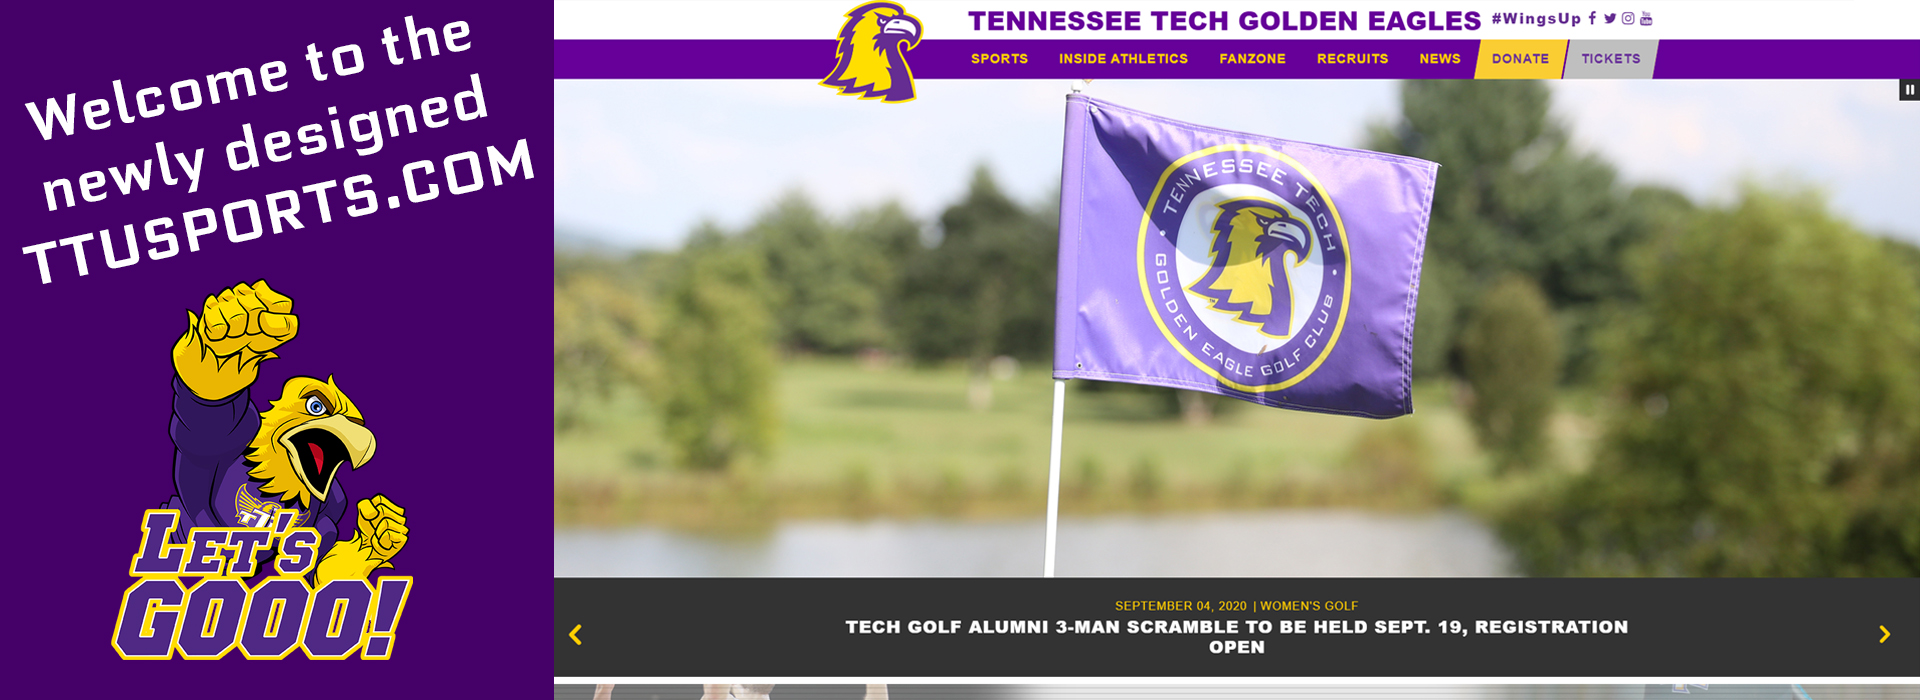 Tech Athletics launches newly redesigned TTUSports.com